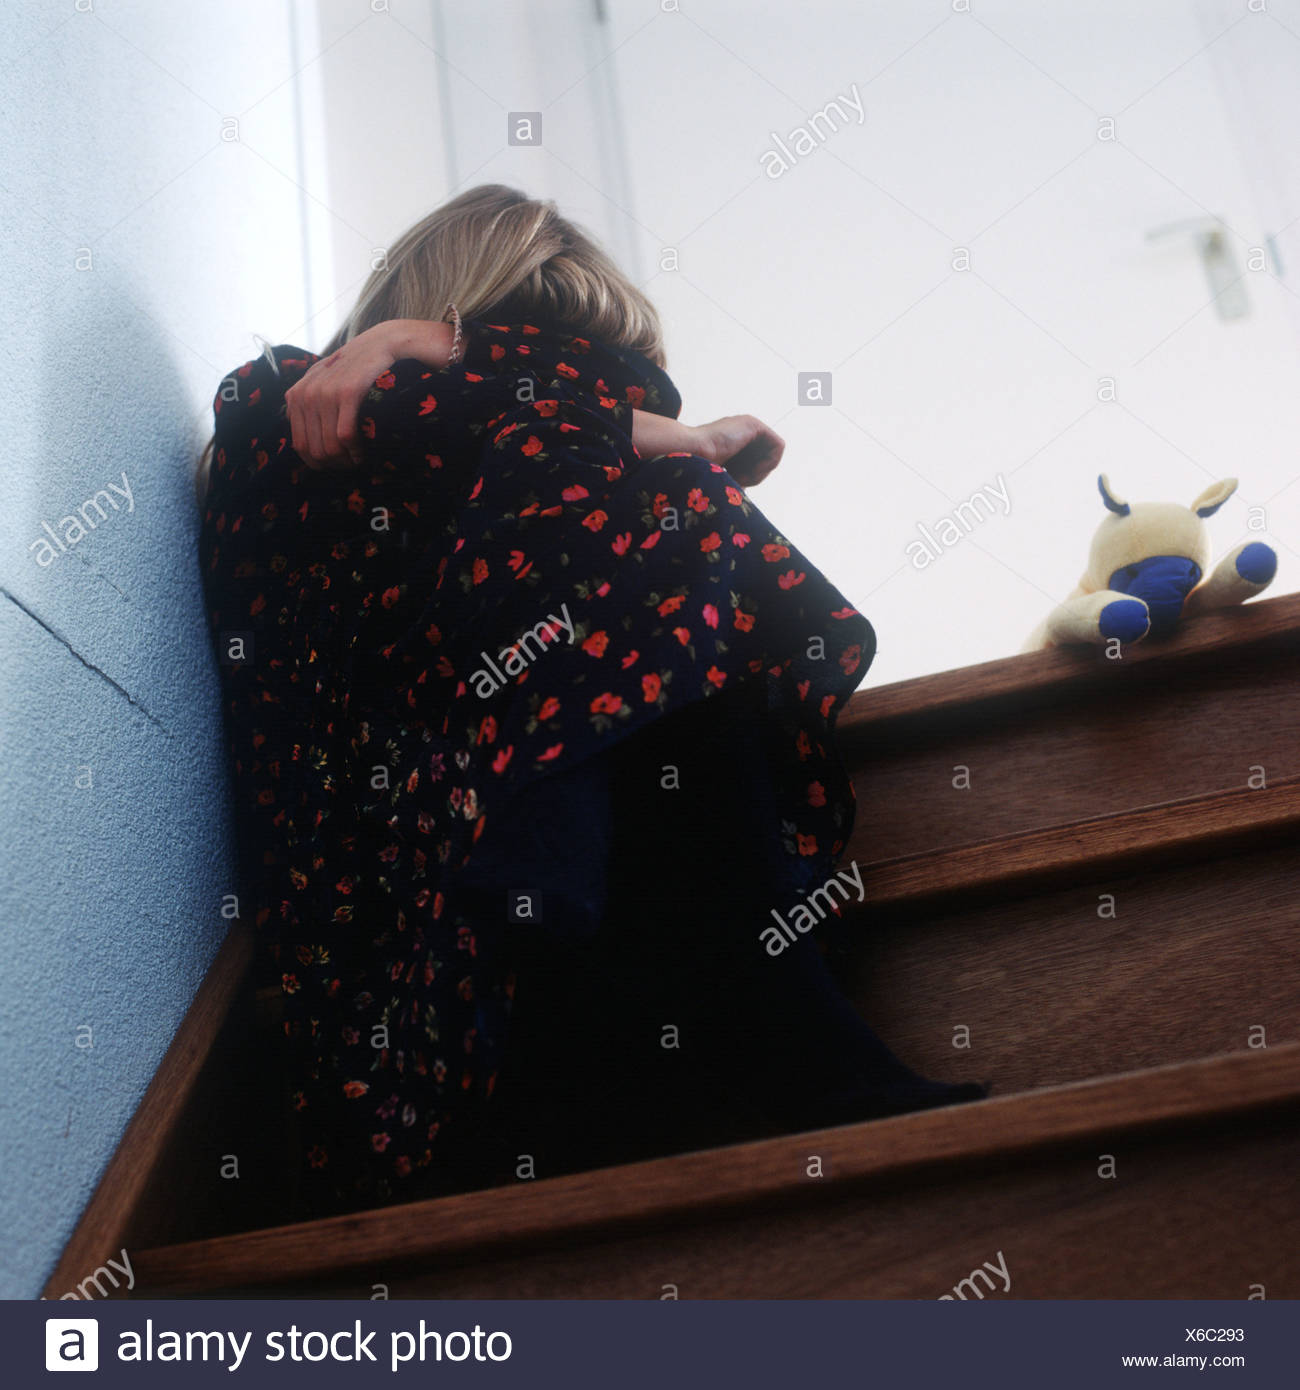 Sad Child Young Girl In Dress Sitting On Stairway Hiding Face In